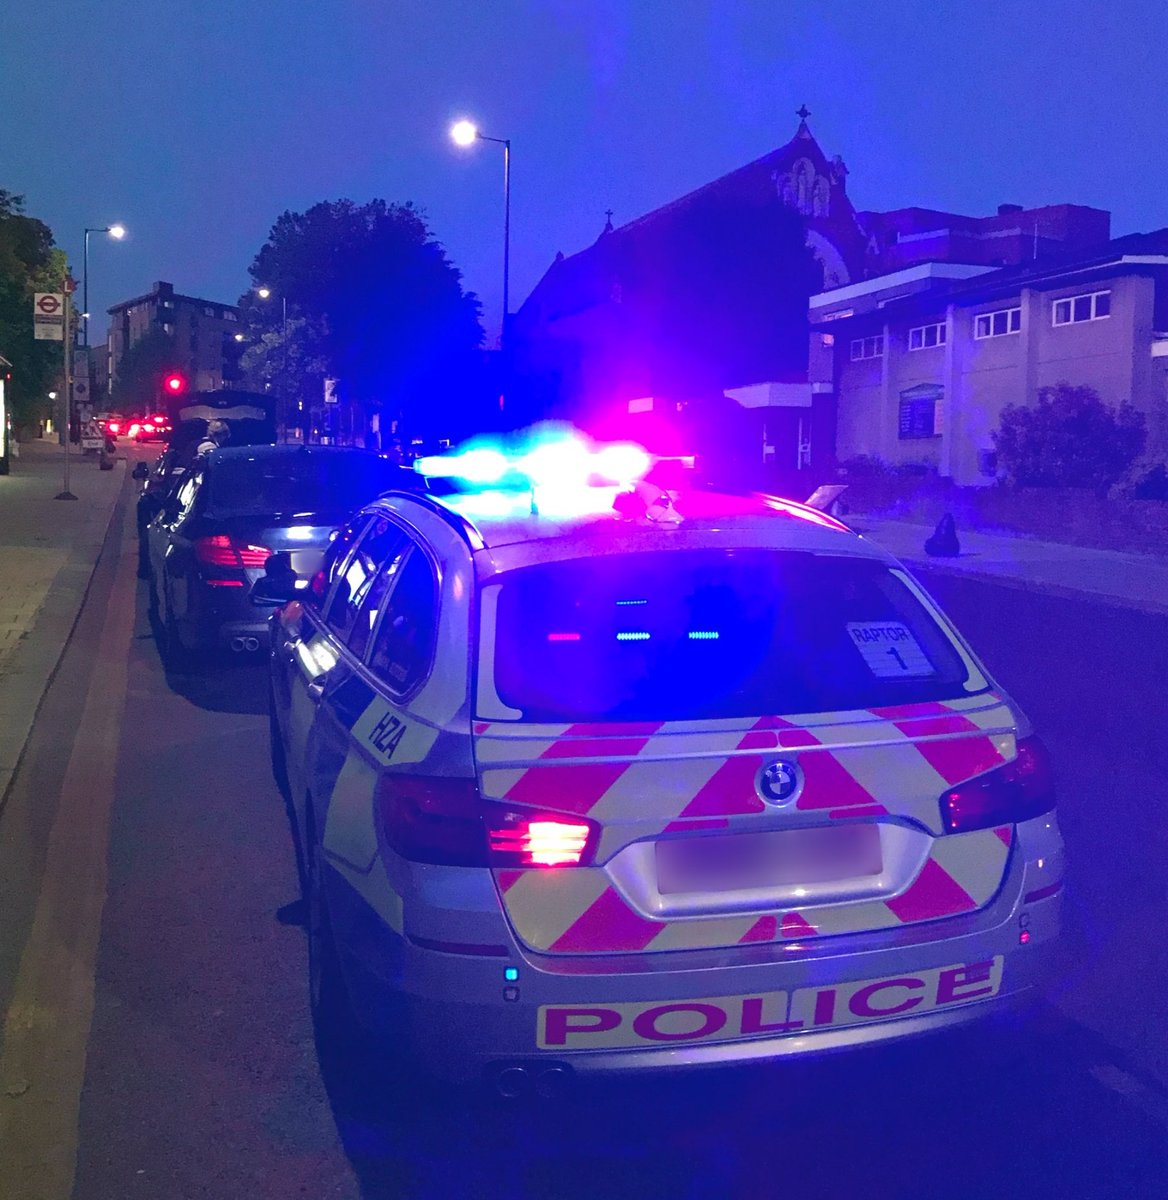 This BMW caught the eye of the #RoadCrimeTeam travelling from #Wembley into #Harlesden - stopped, all 3 occupants arrested: possession of drugs & psychoactive substances with intent to supply, driver was drug driving + fake driving licence found concealed in the car. #OpSpartan